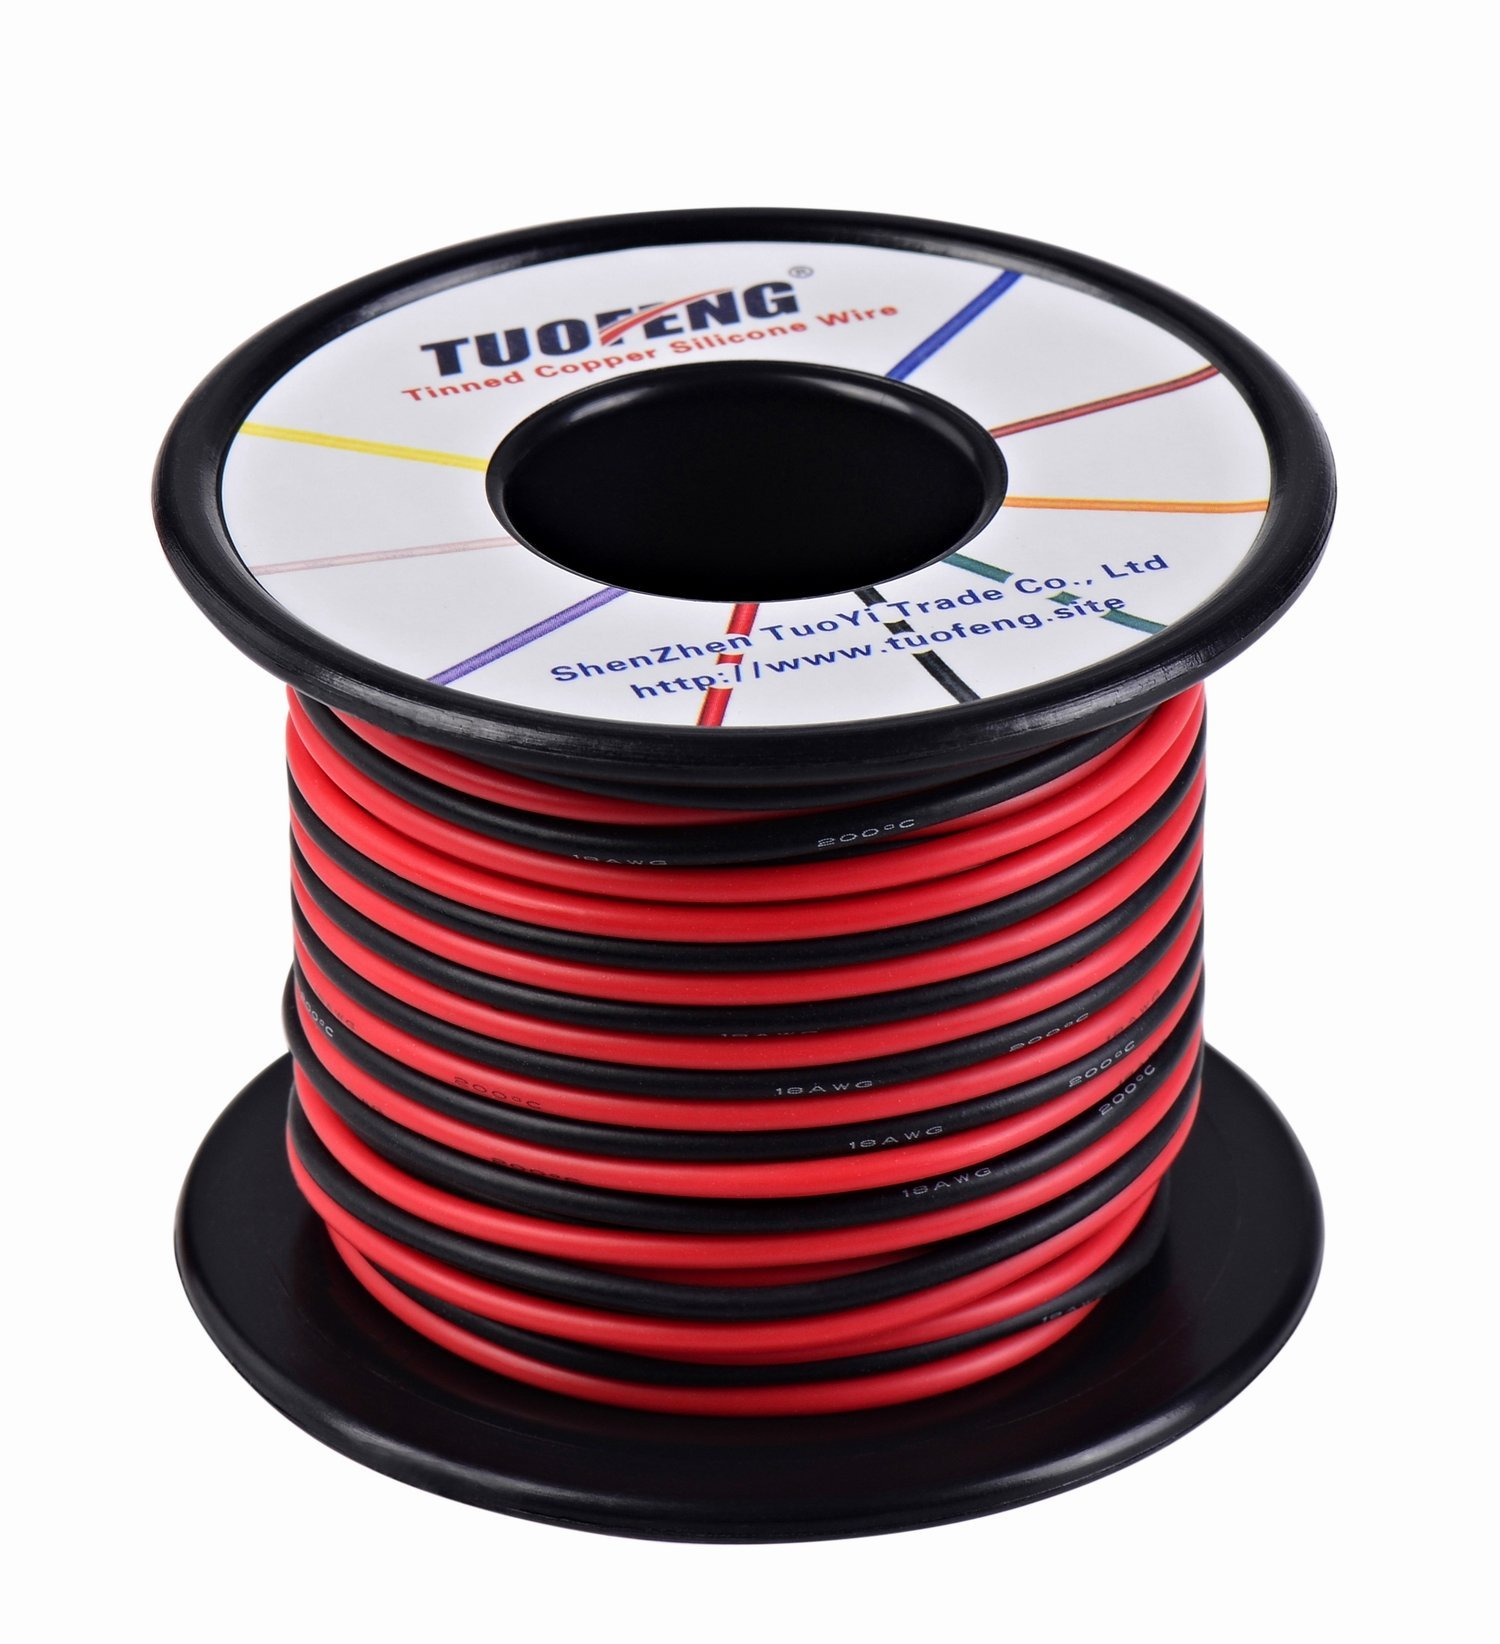 18awg Wire, 66 Feet Super Flexible Silicone Insulated Hookup Wire 33 ft Black and 33 ft Red 2 Separated Wires Tinned Copper Wire High Temperature Resistance for 3D Printer,RC Vehicle